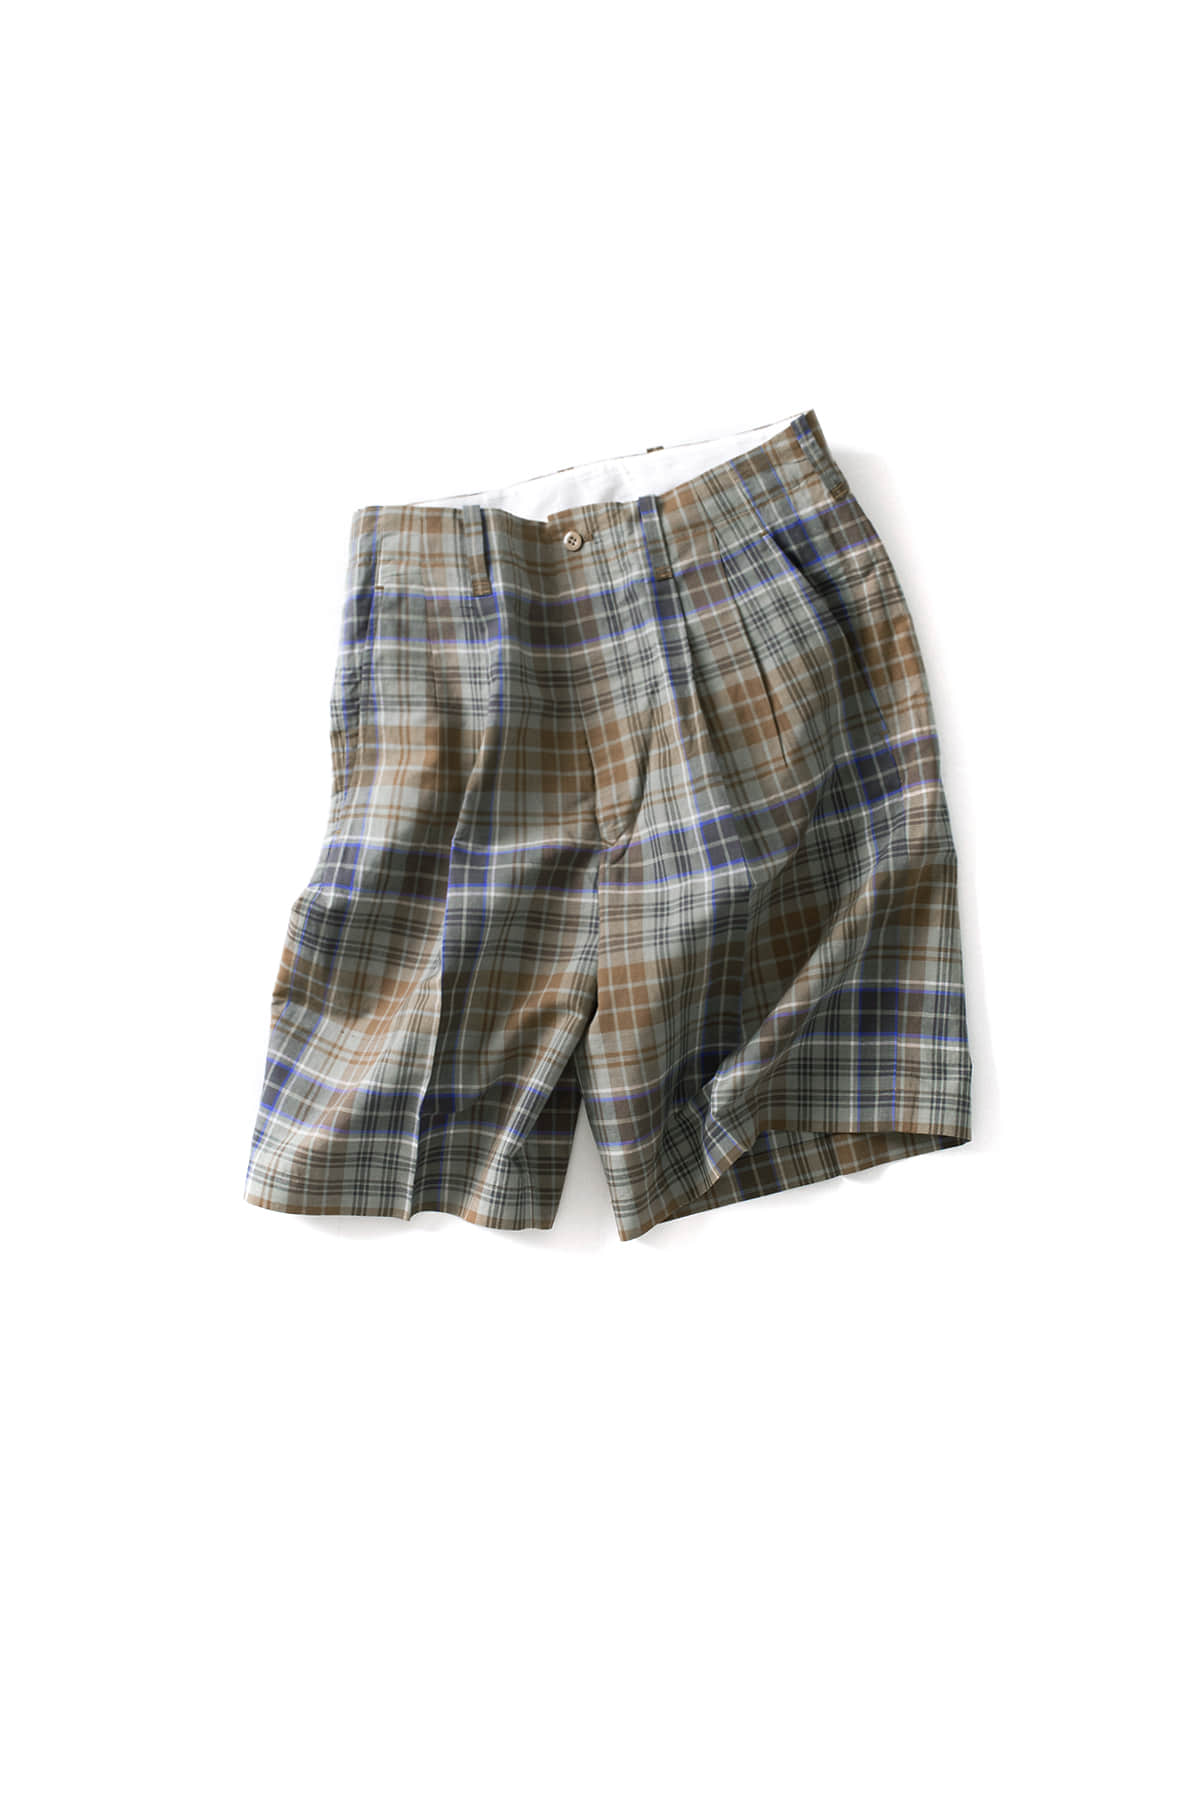 Scye : Cotton And Linen Plaid Shorts (Blue)